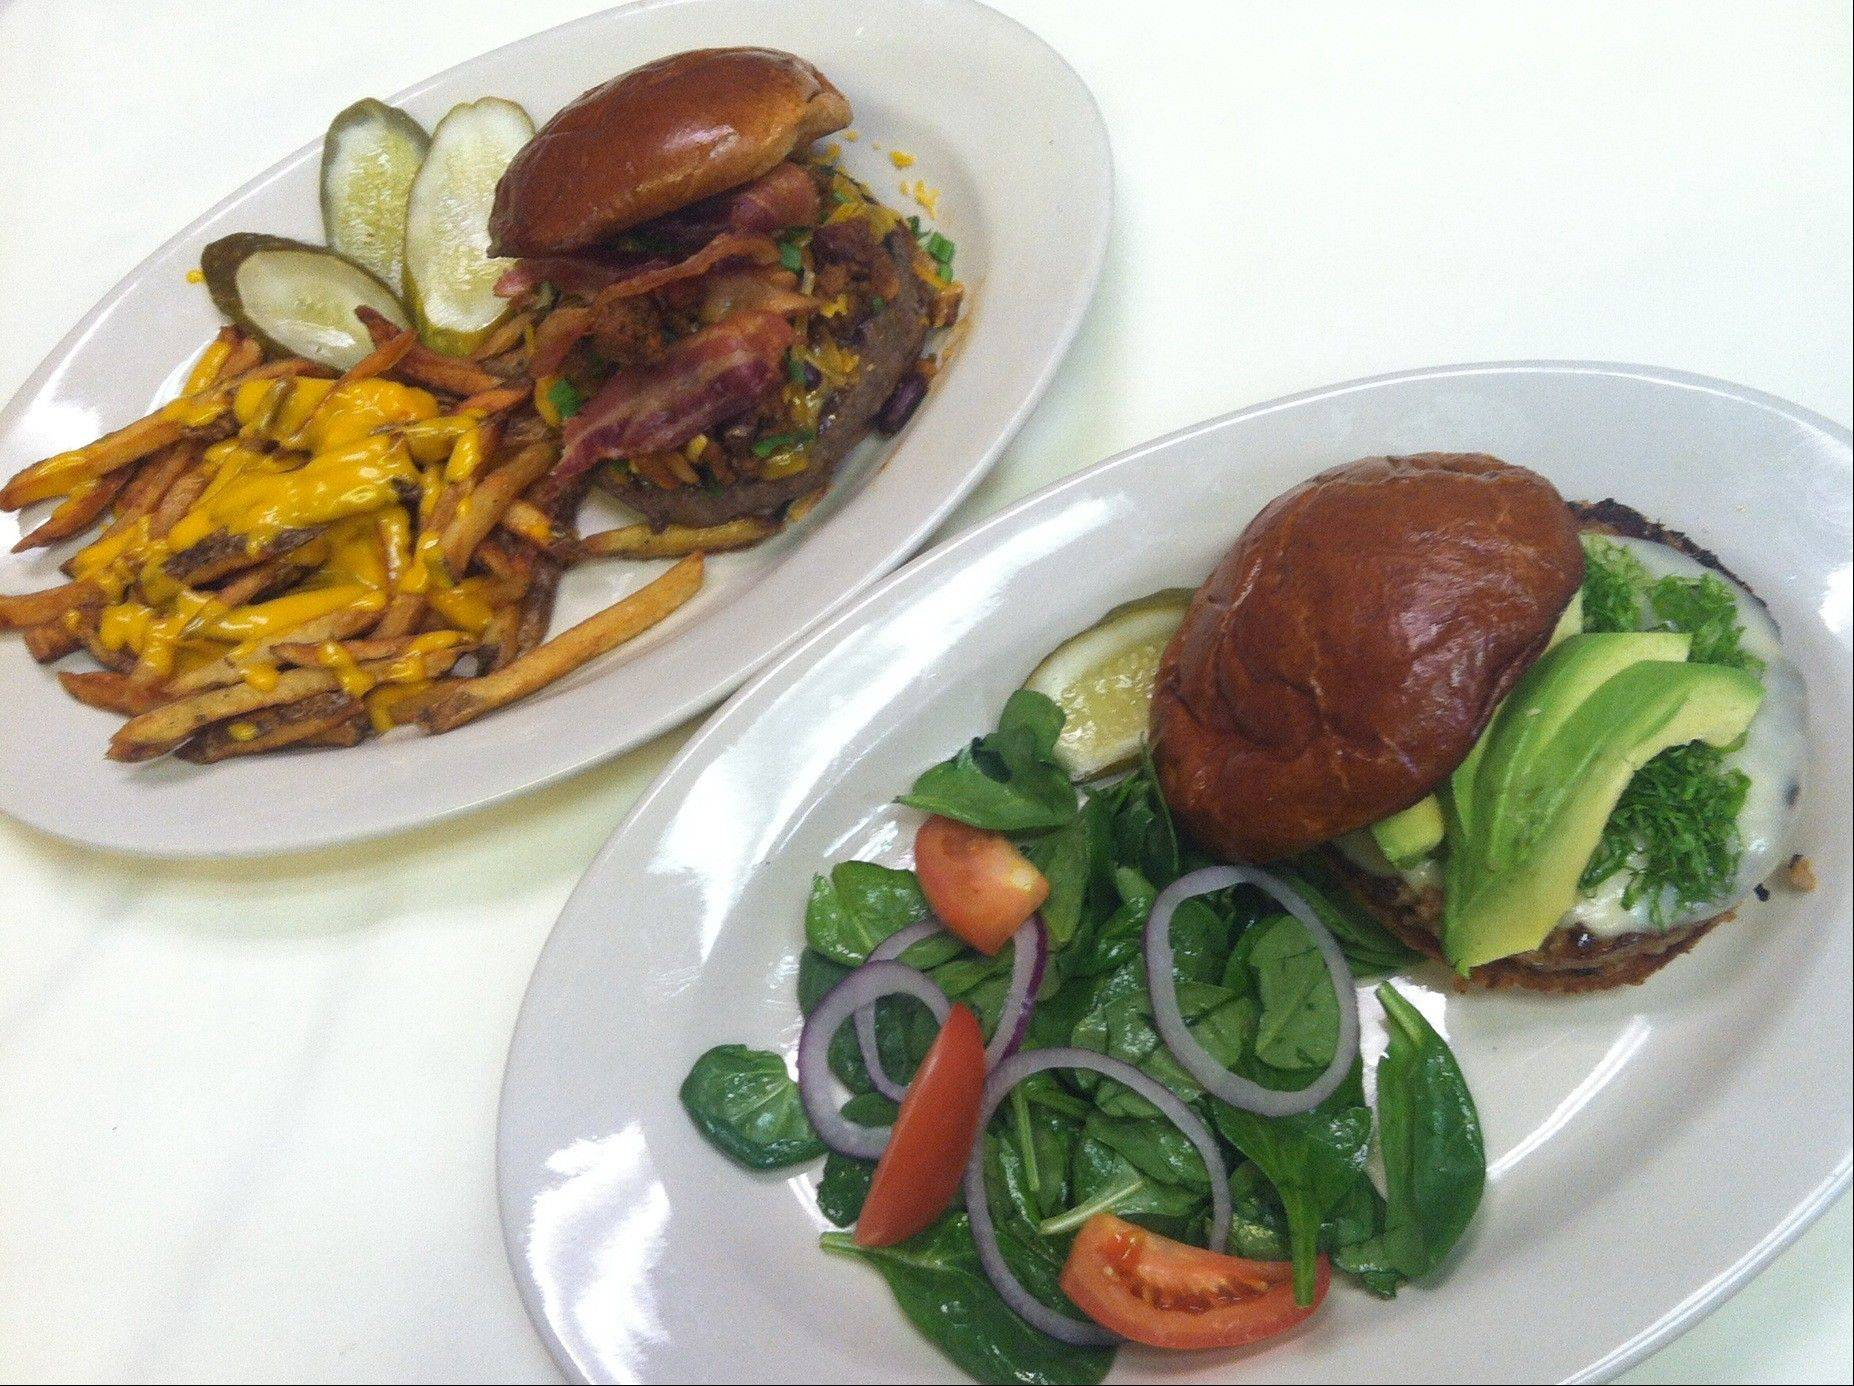 Wickets' burger competition features a lean turkey burger and a loaded up sinful burger.